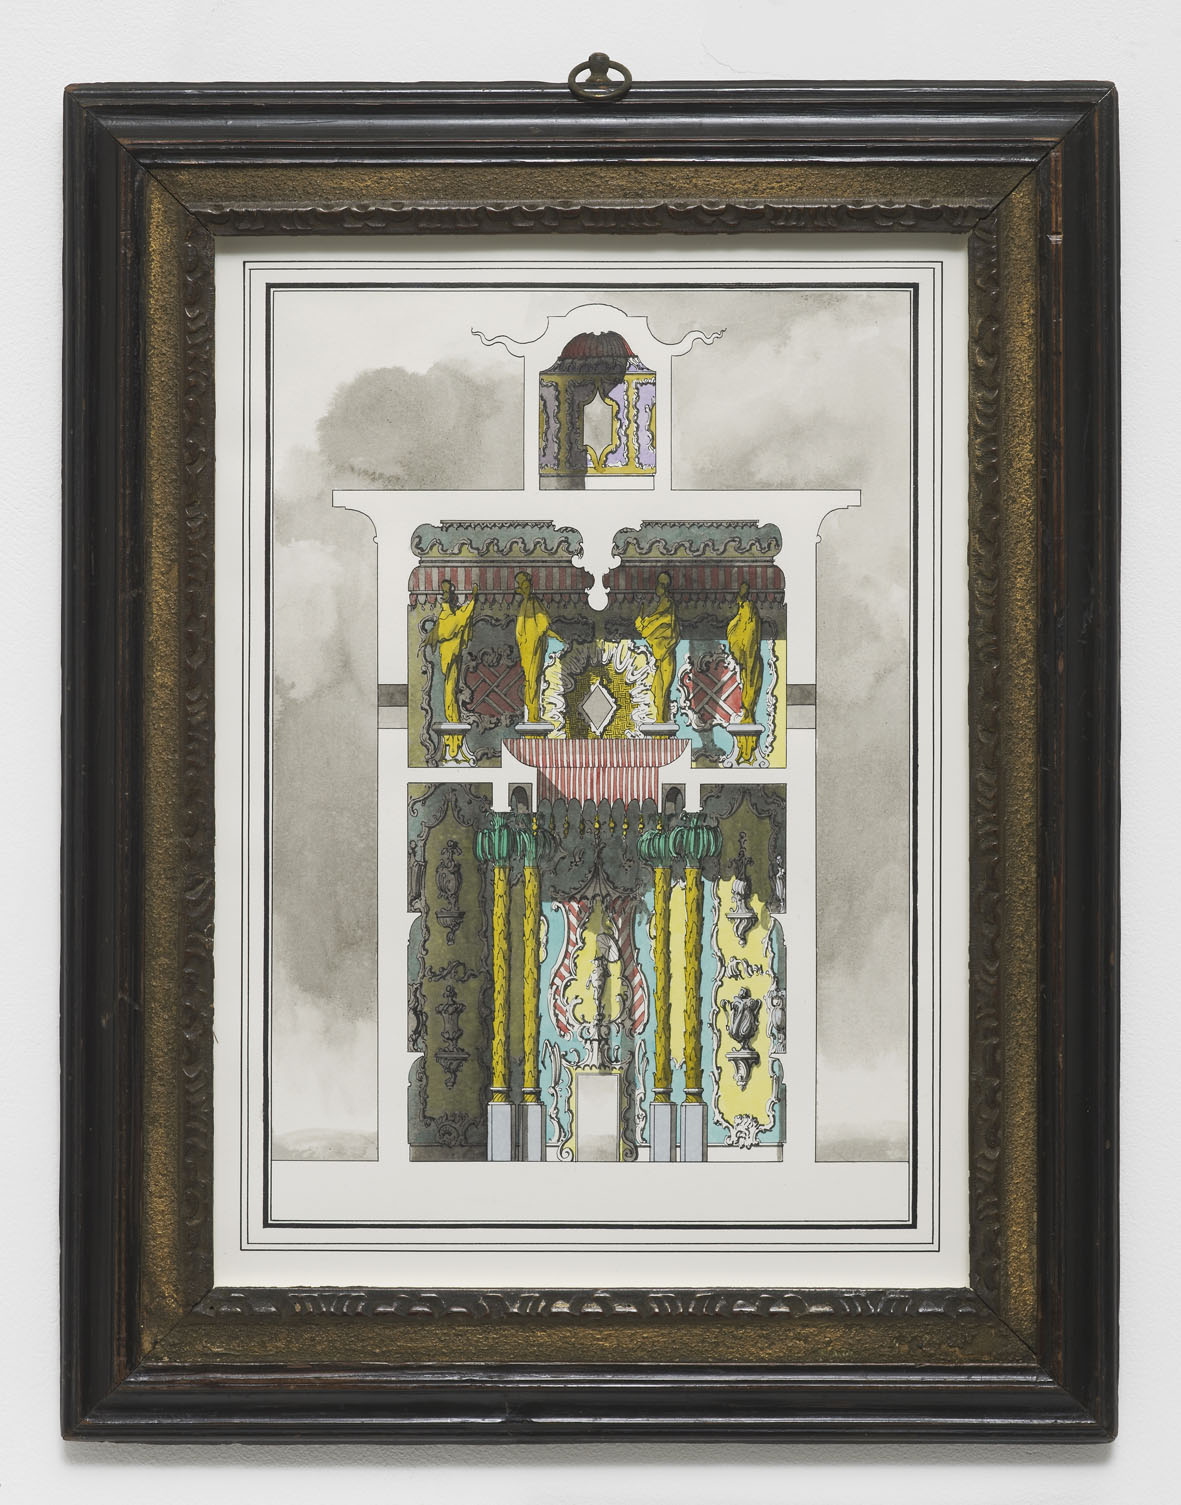 Two-storey, two room pavilion in the Oriental Taste 2016 Ink and watercolour on paper 46.5 x 36 cm / 18.3 x 14.1 in (framed)